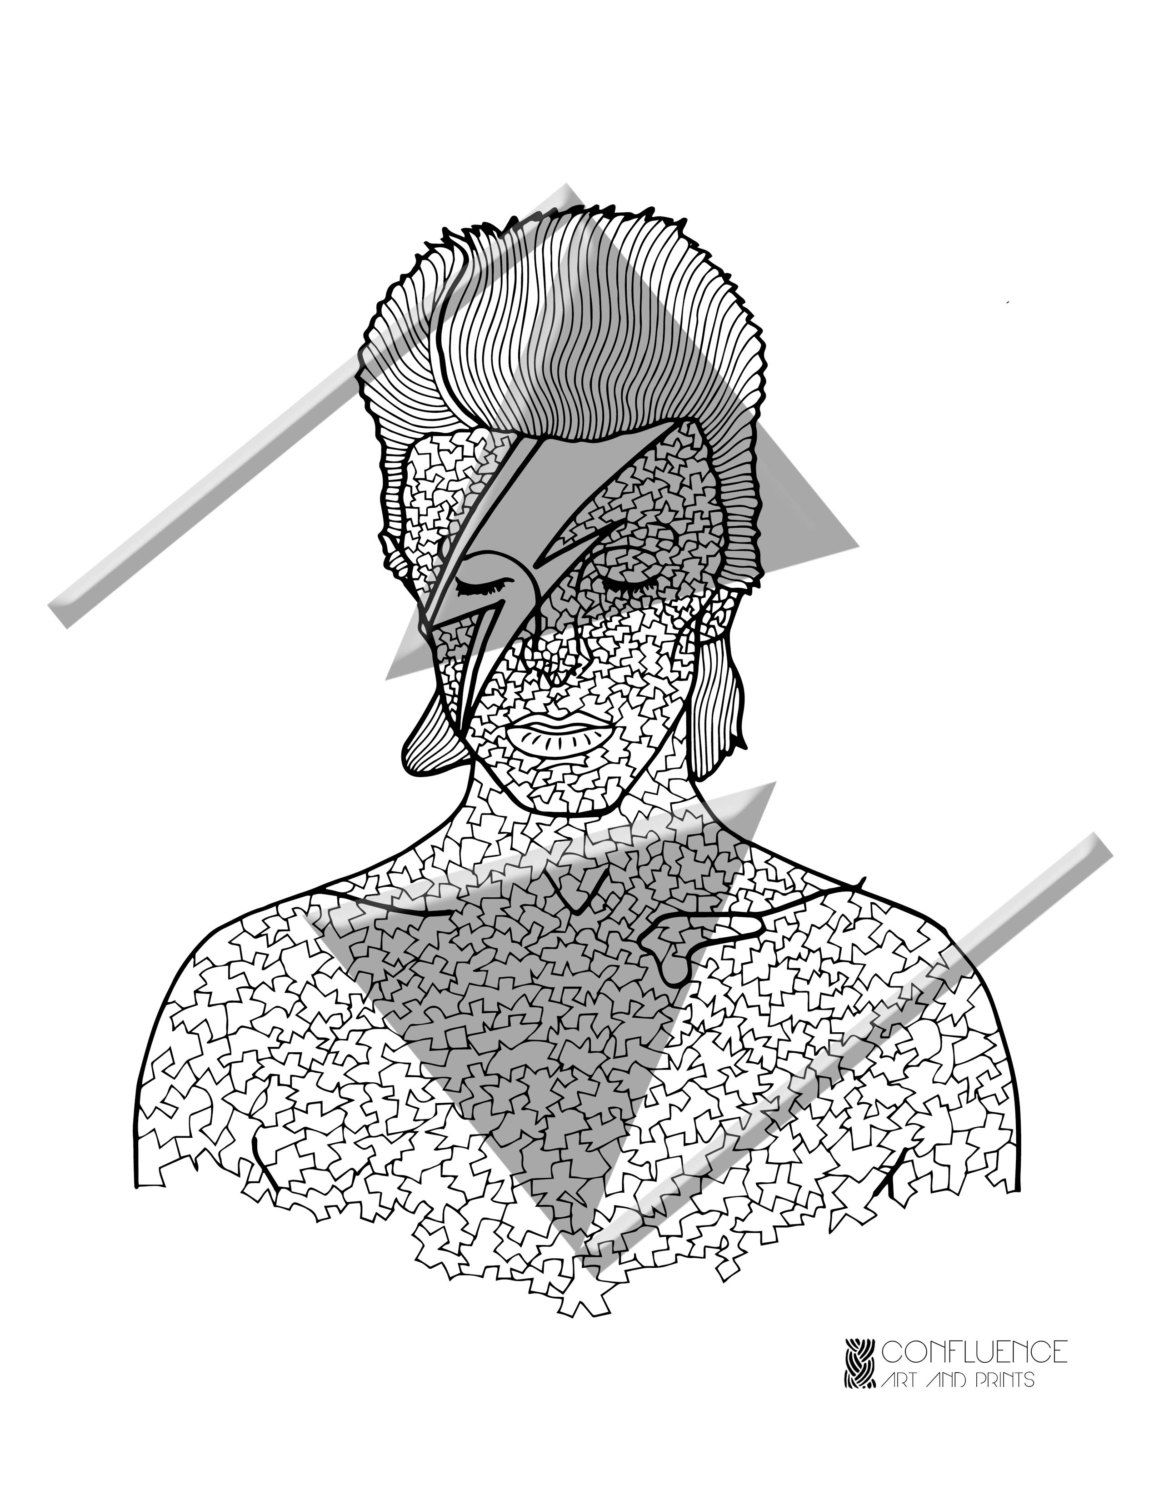 adult coloring pages coloring for adults david bowie mosaic pop art printable coloring sheets printable coloring page printable gifts